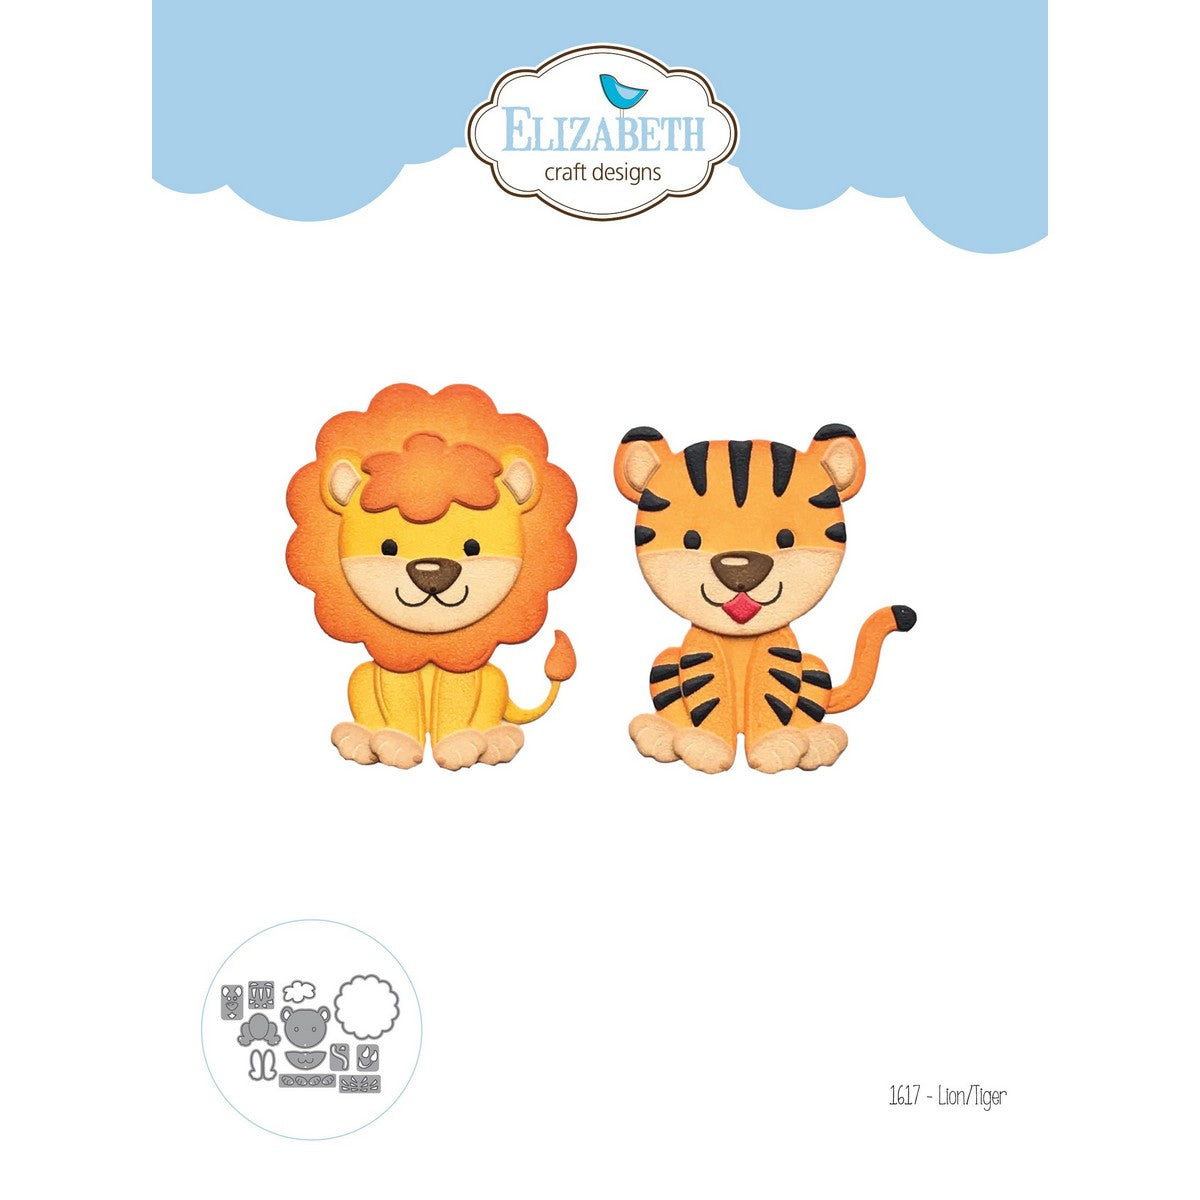 Elizabeth Craft Design - Lion/Tiger